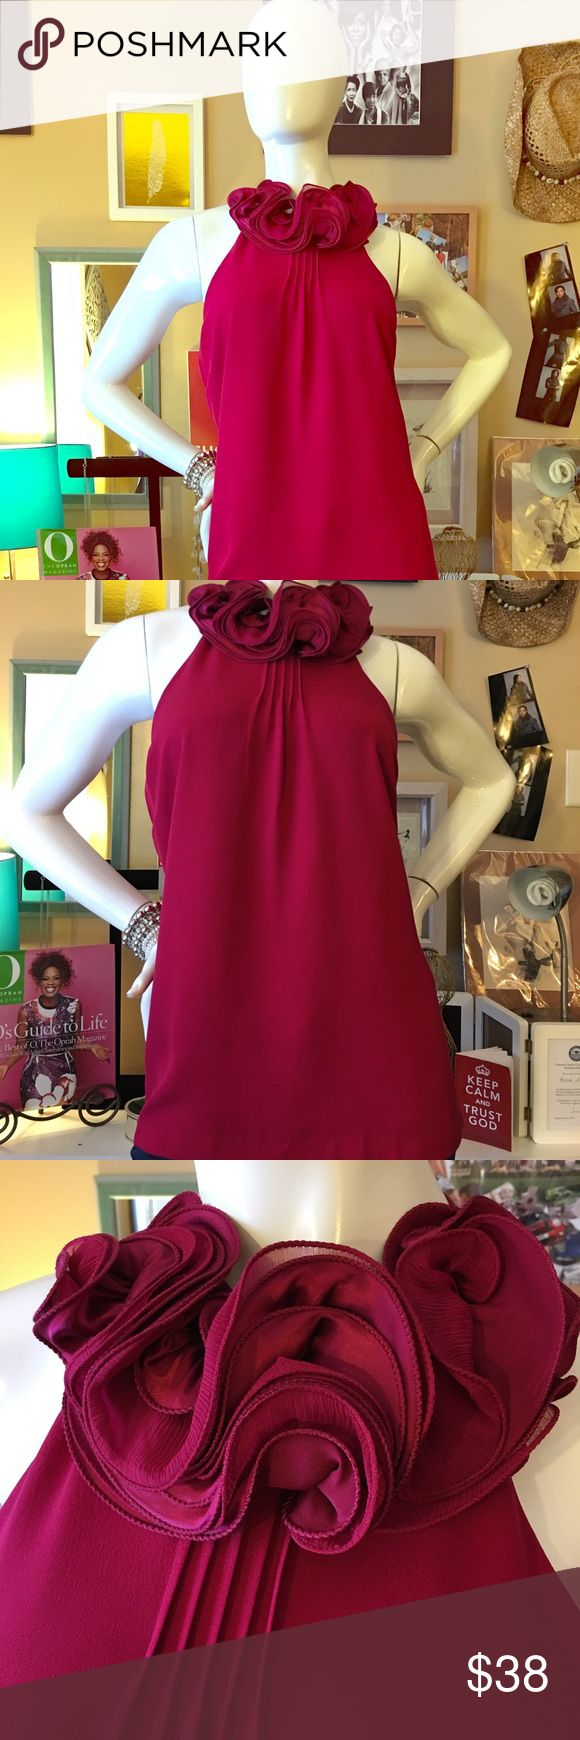 Hot Pink top. Beautiful hot pink top dress up or down. Ann Taylor Tops Blouses